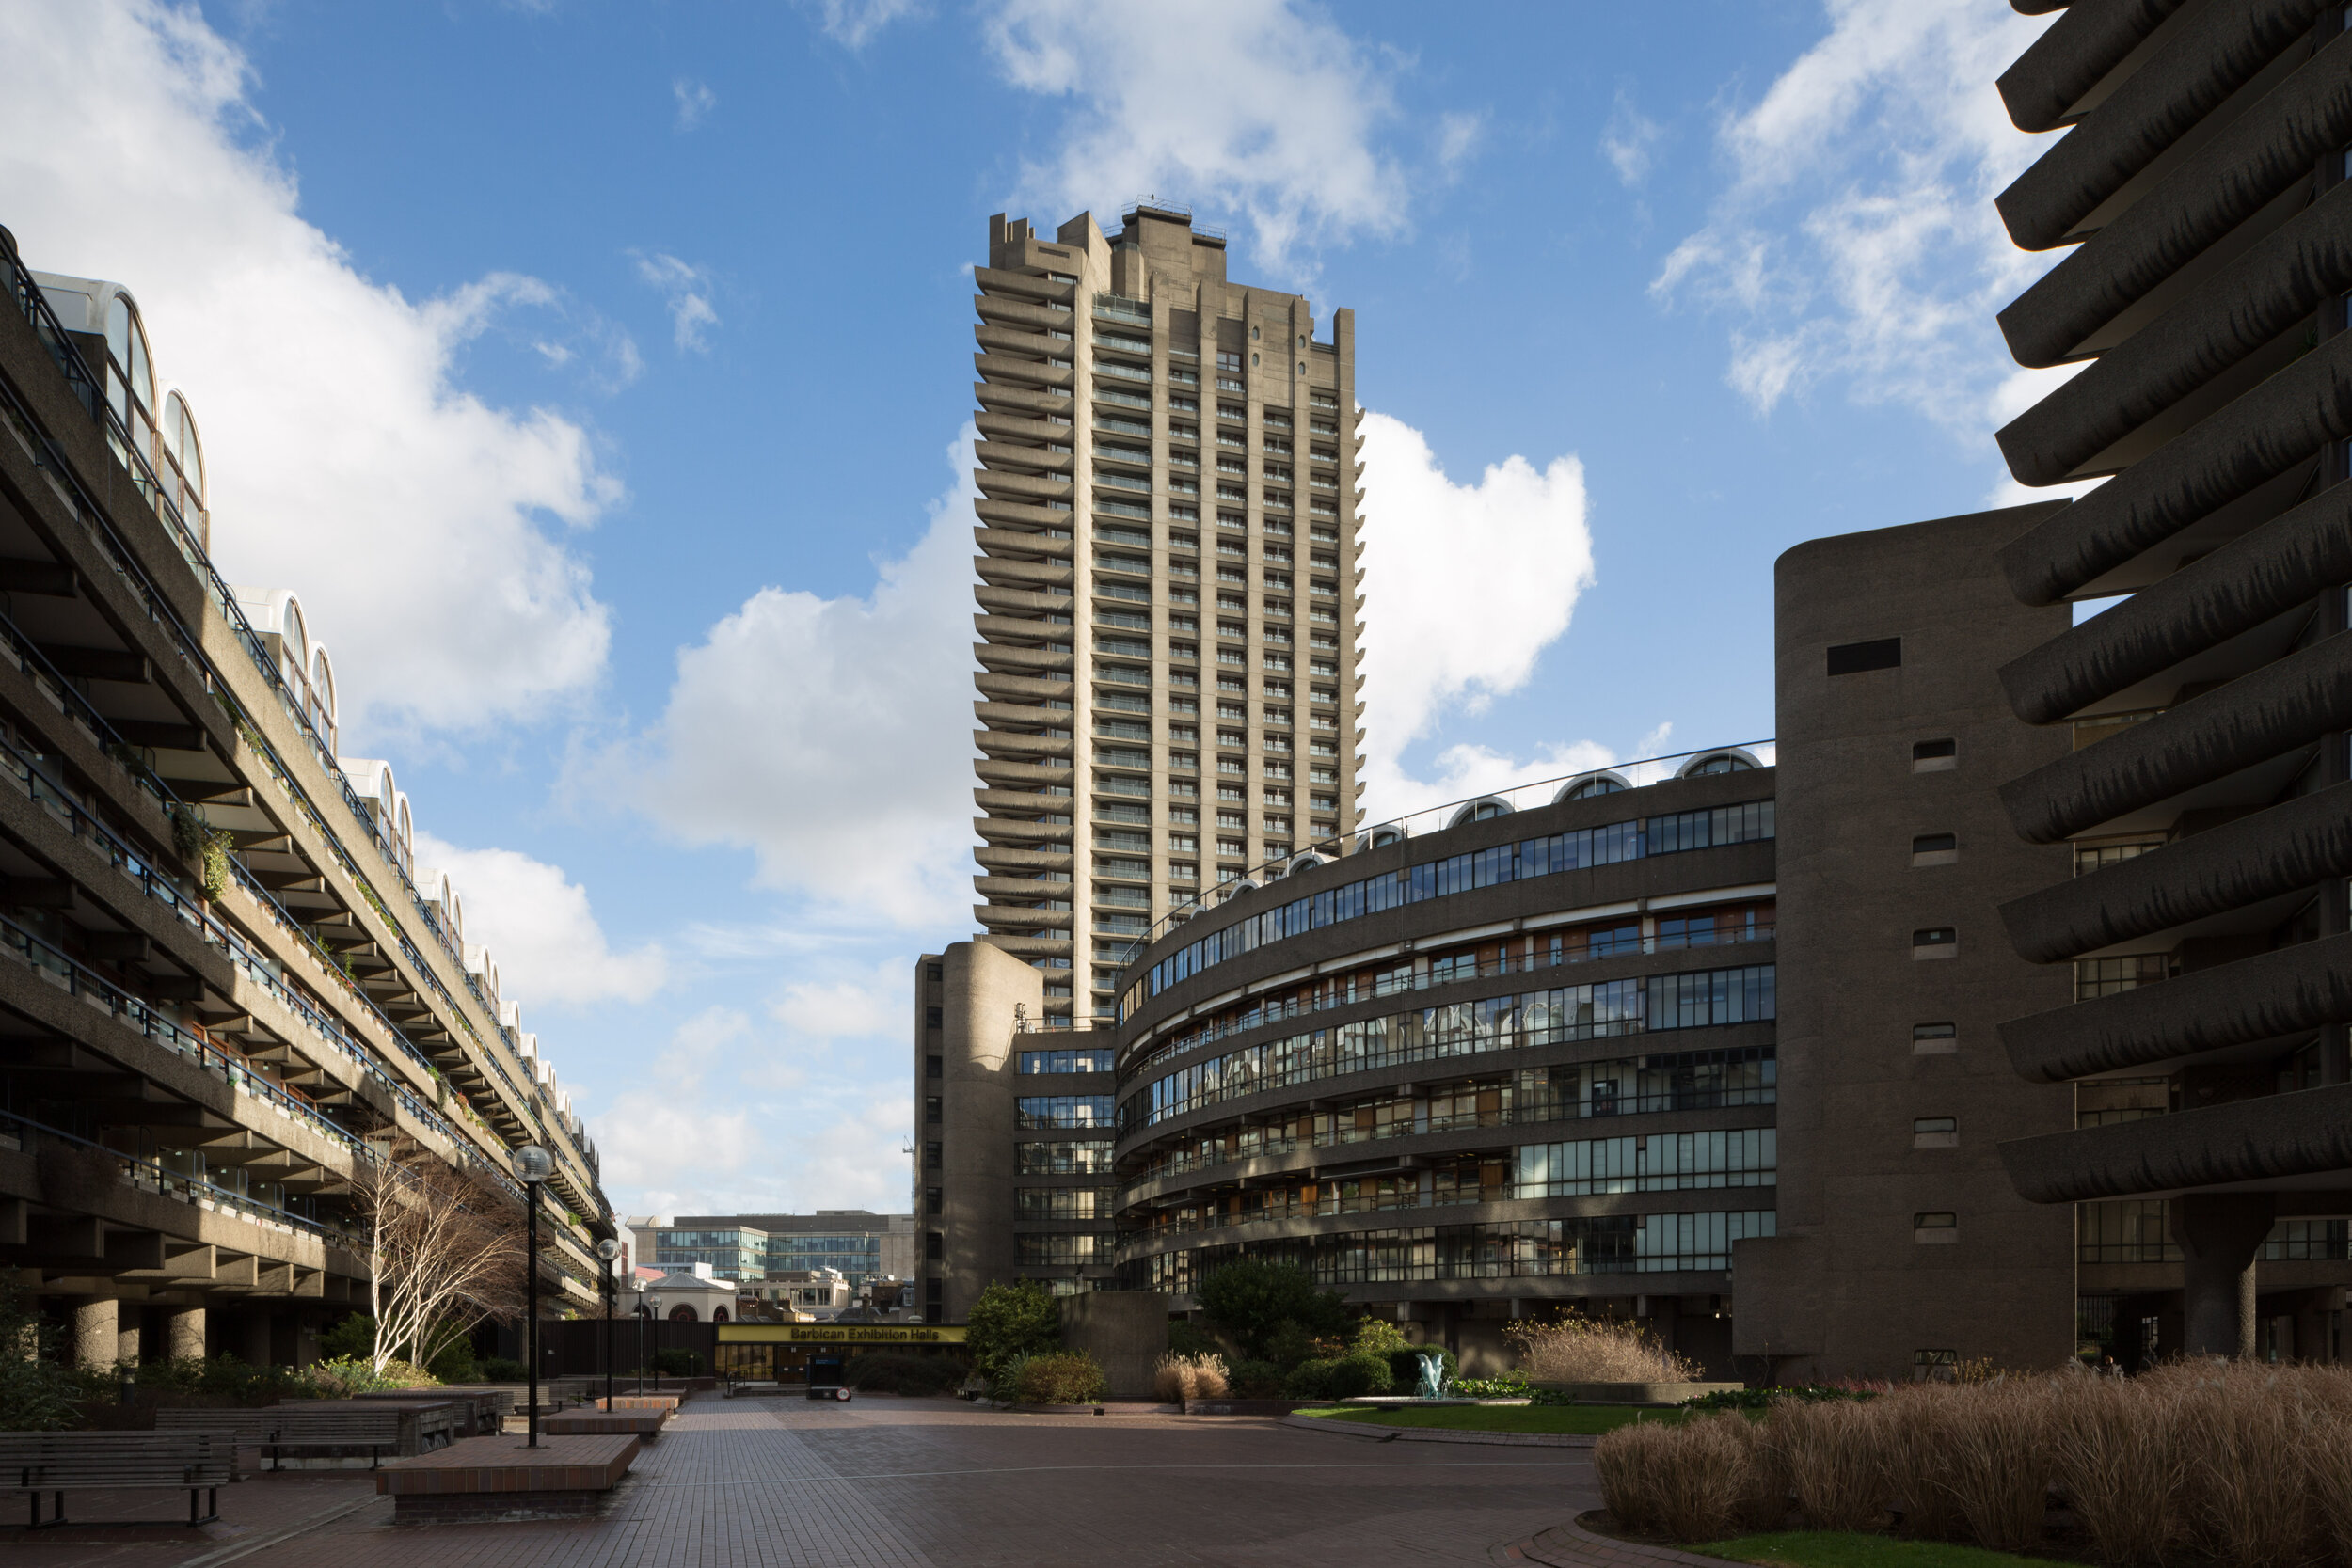 The Barbican Center 180125 056.jpg